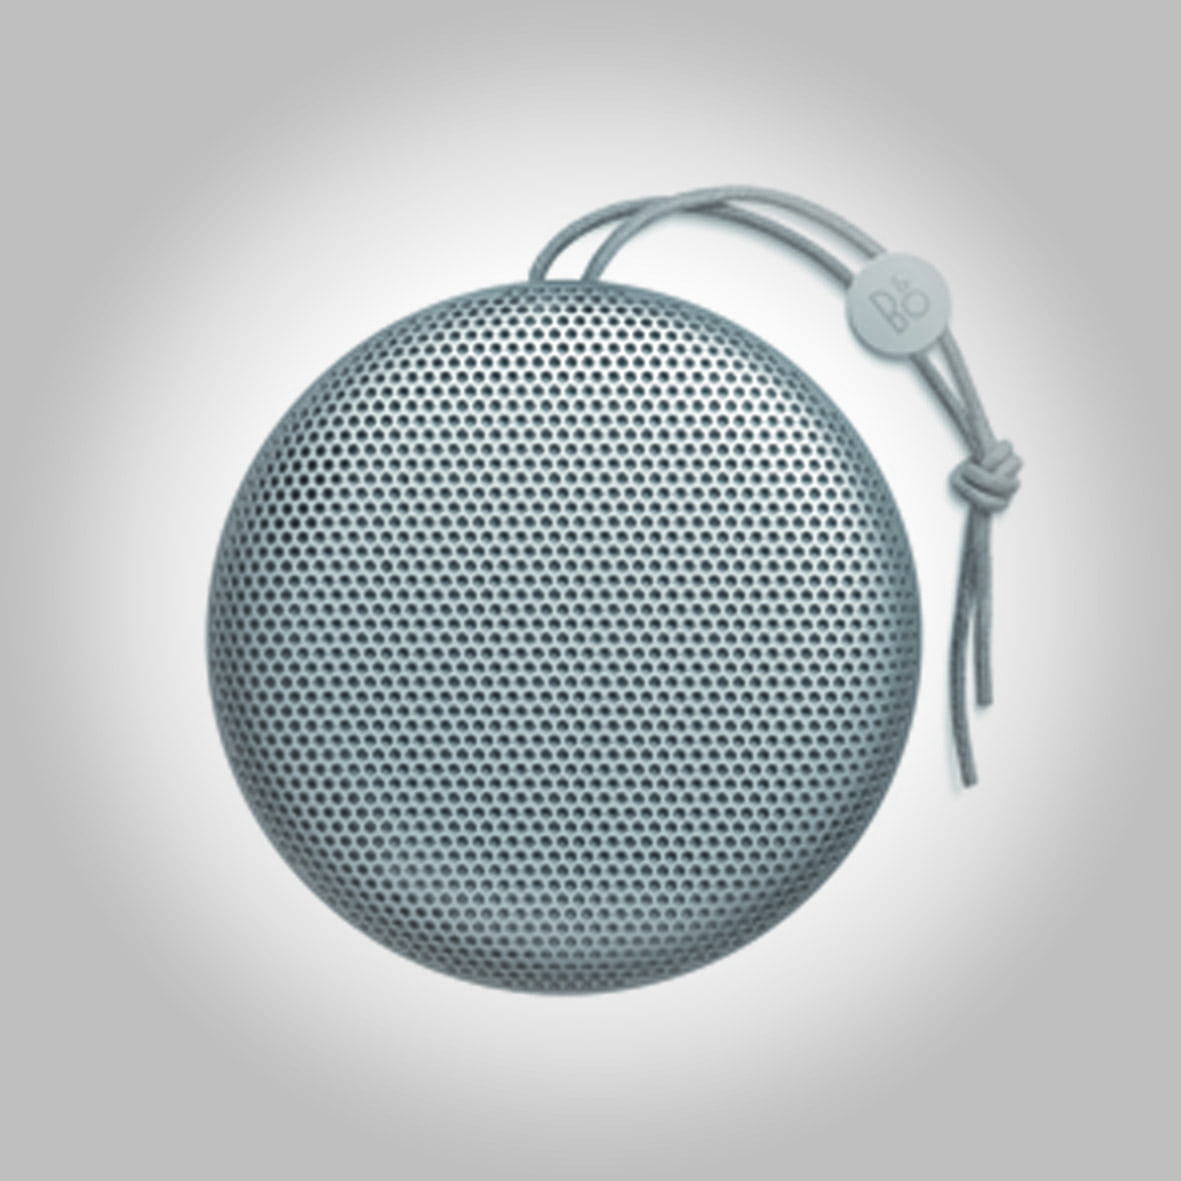 Enceinte Bluetooth Beoplay A1